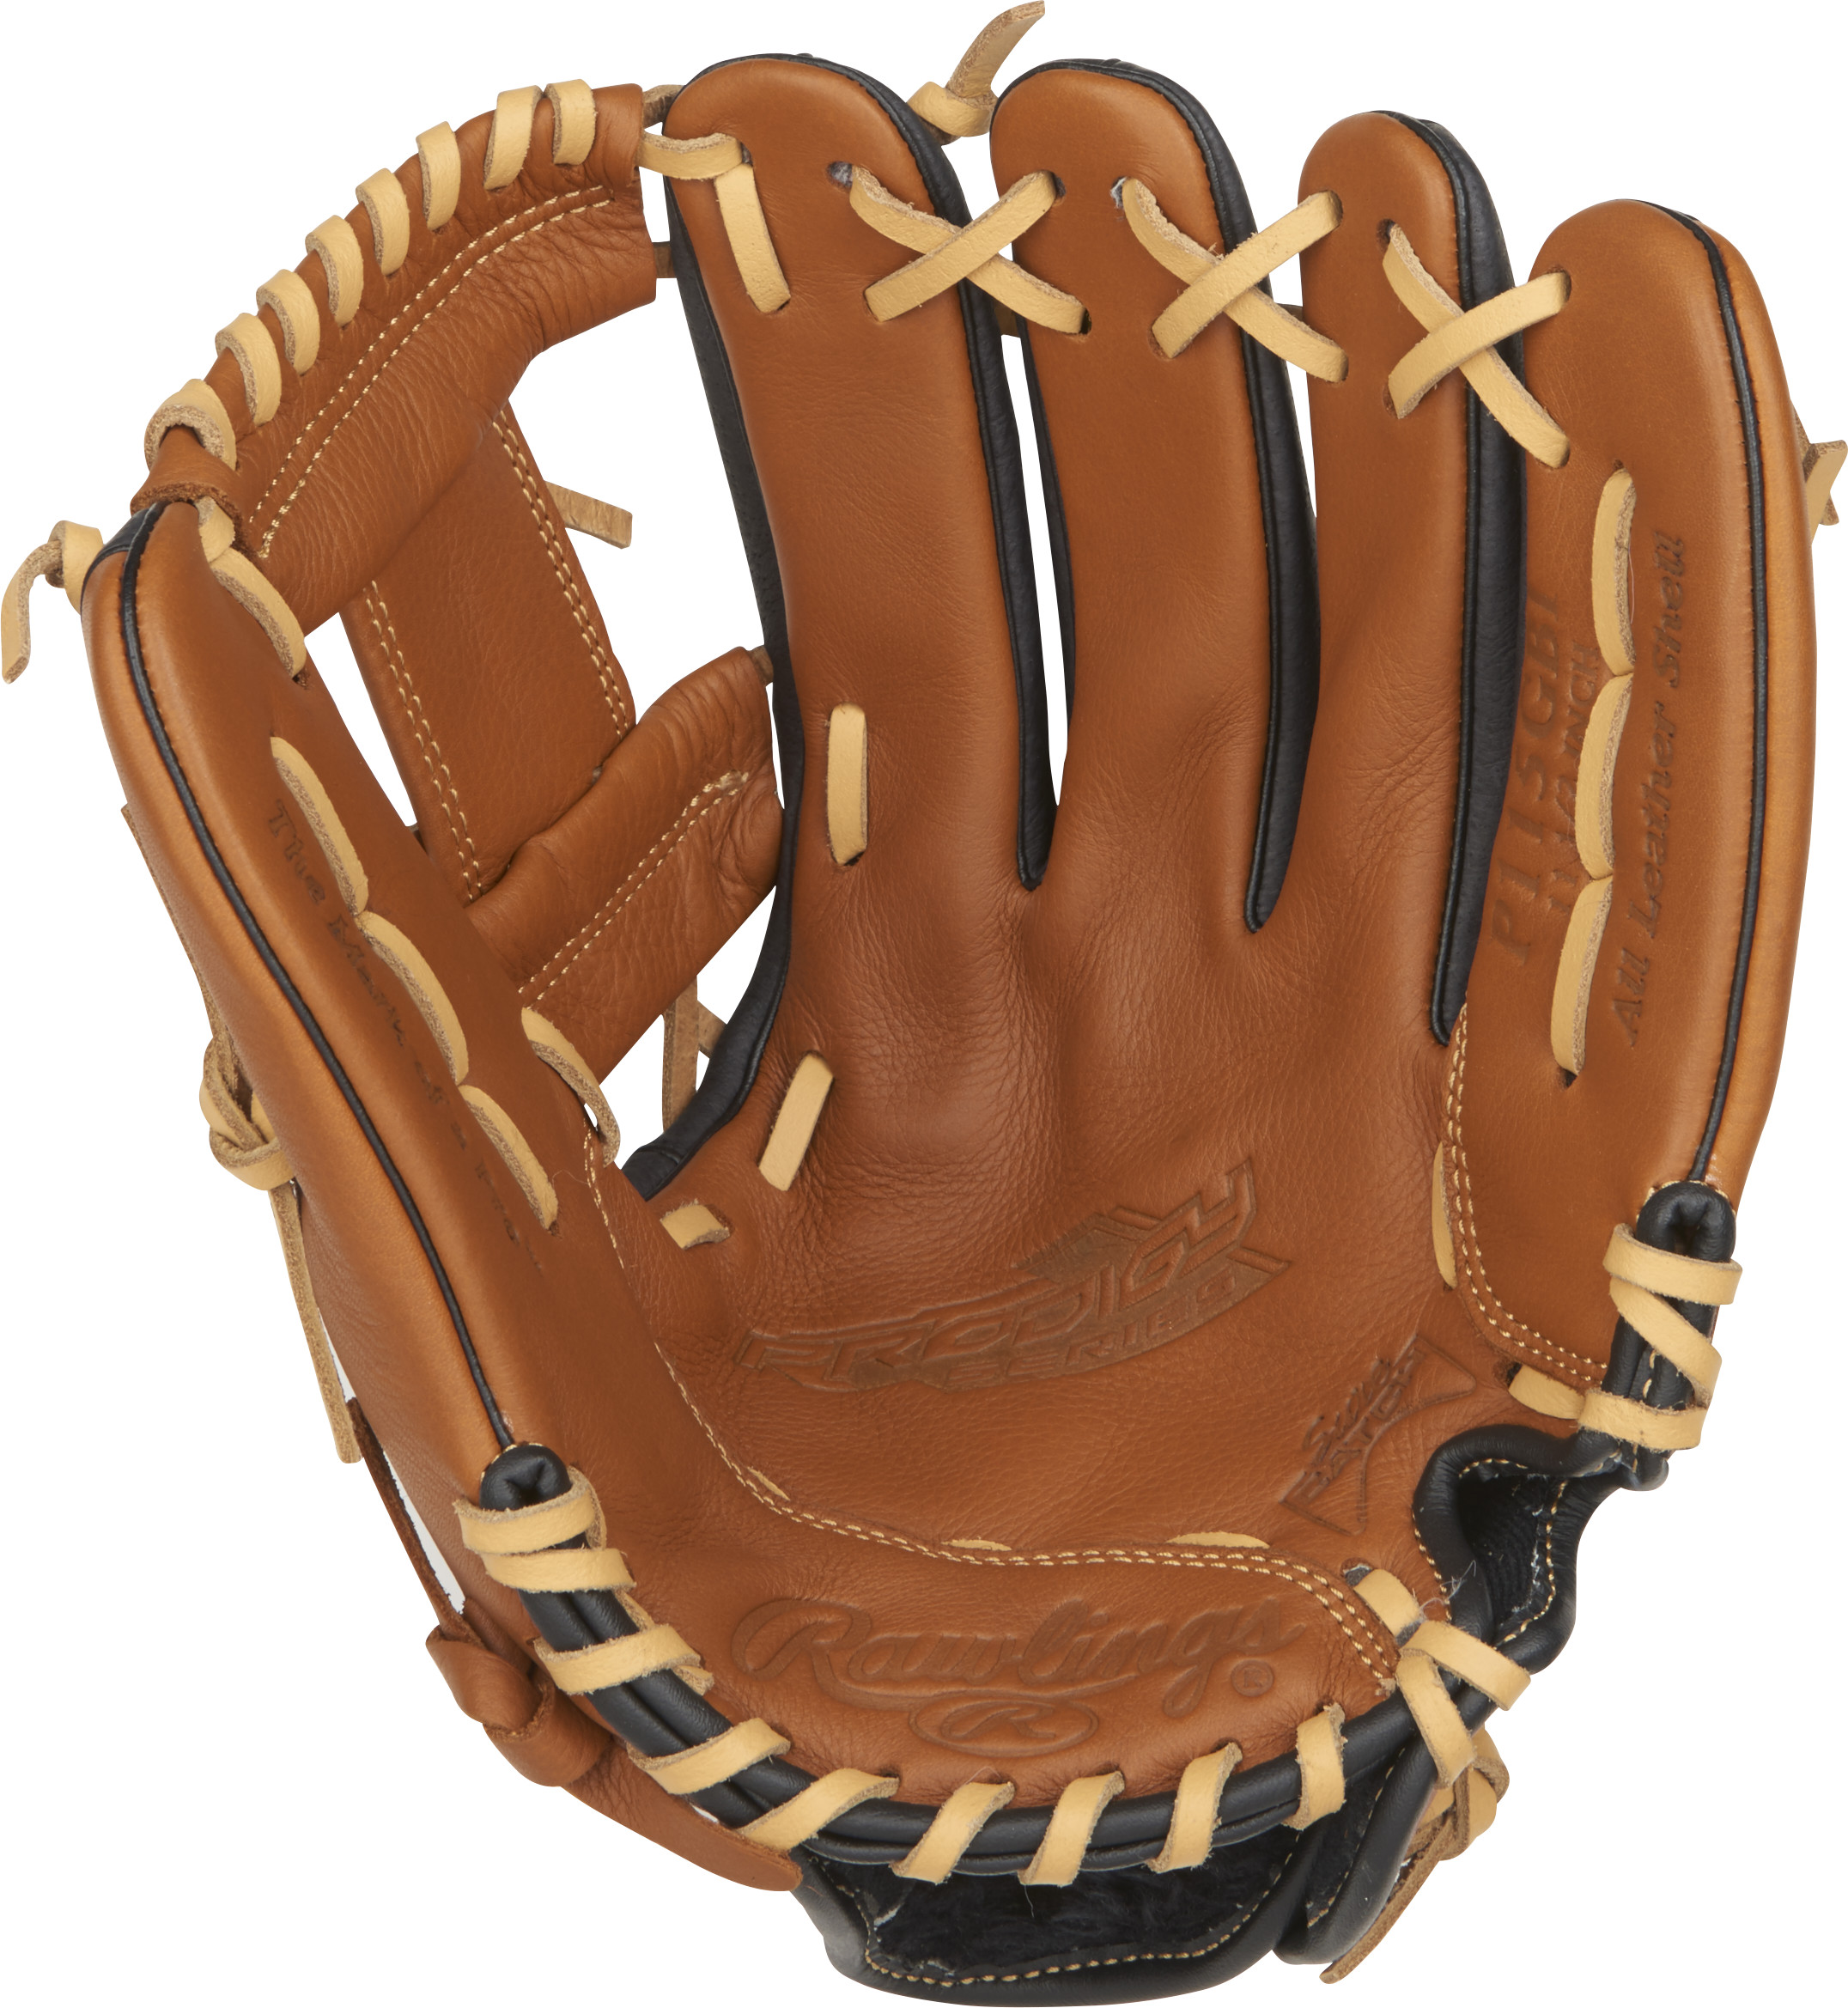 http://www.bestbatdeals.com/images/gloves/rawlings/P115GBI-1.jpg